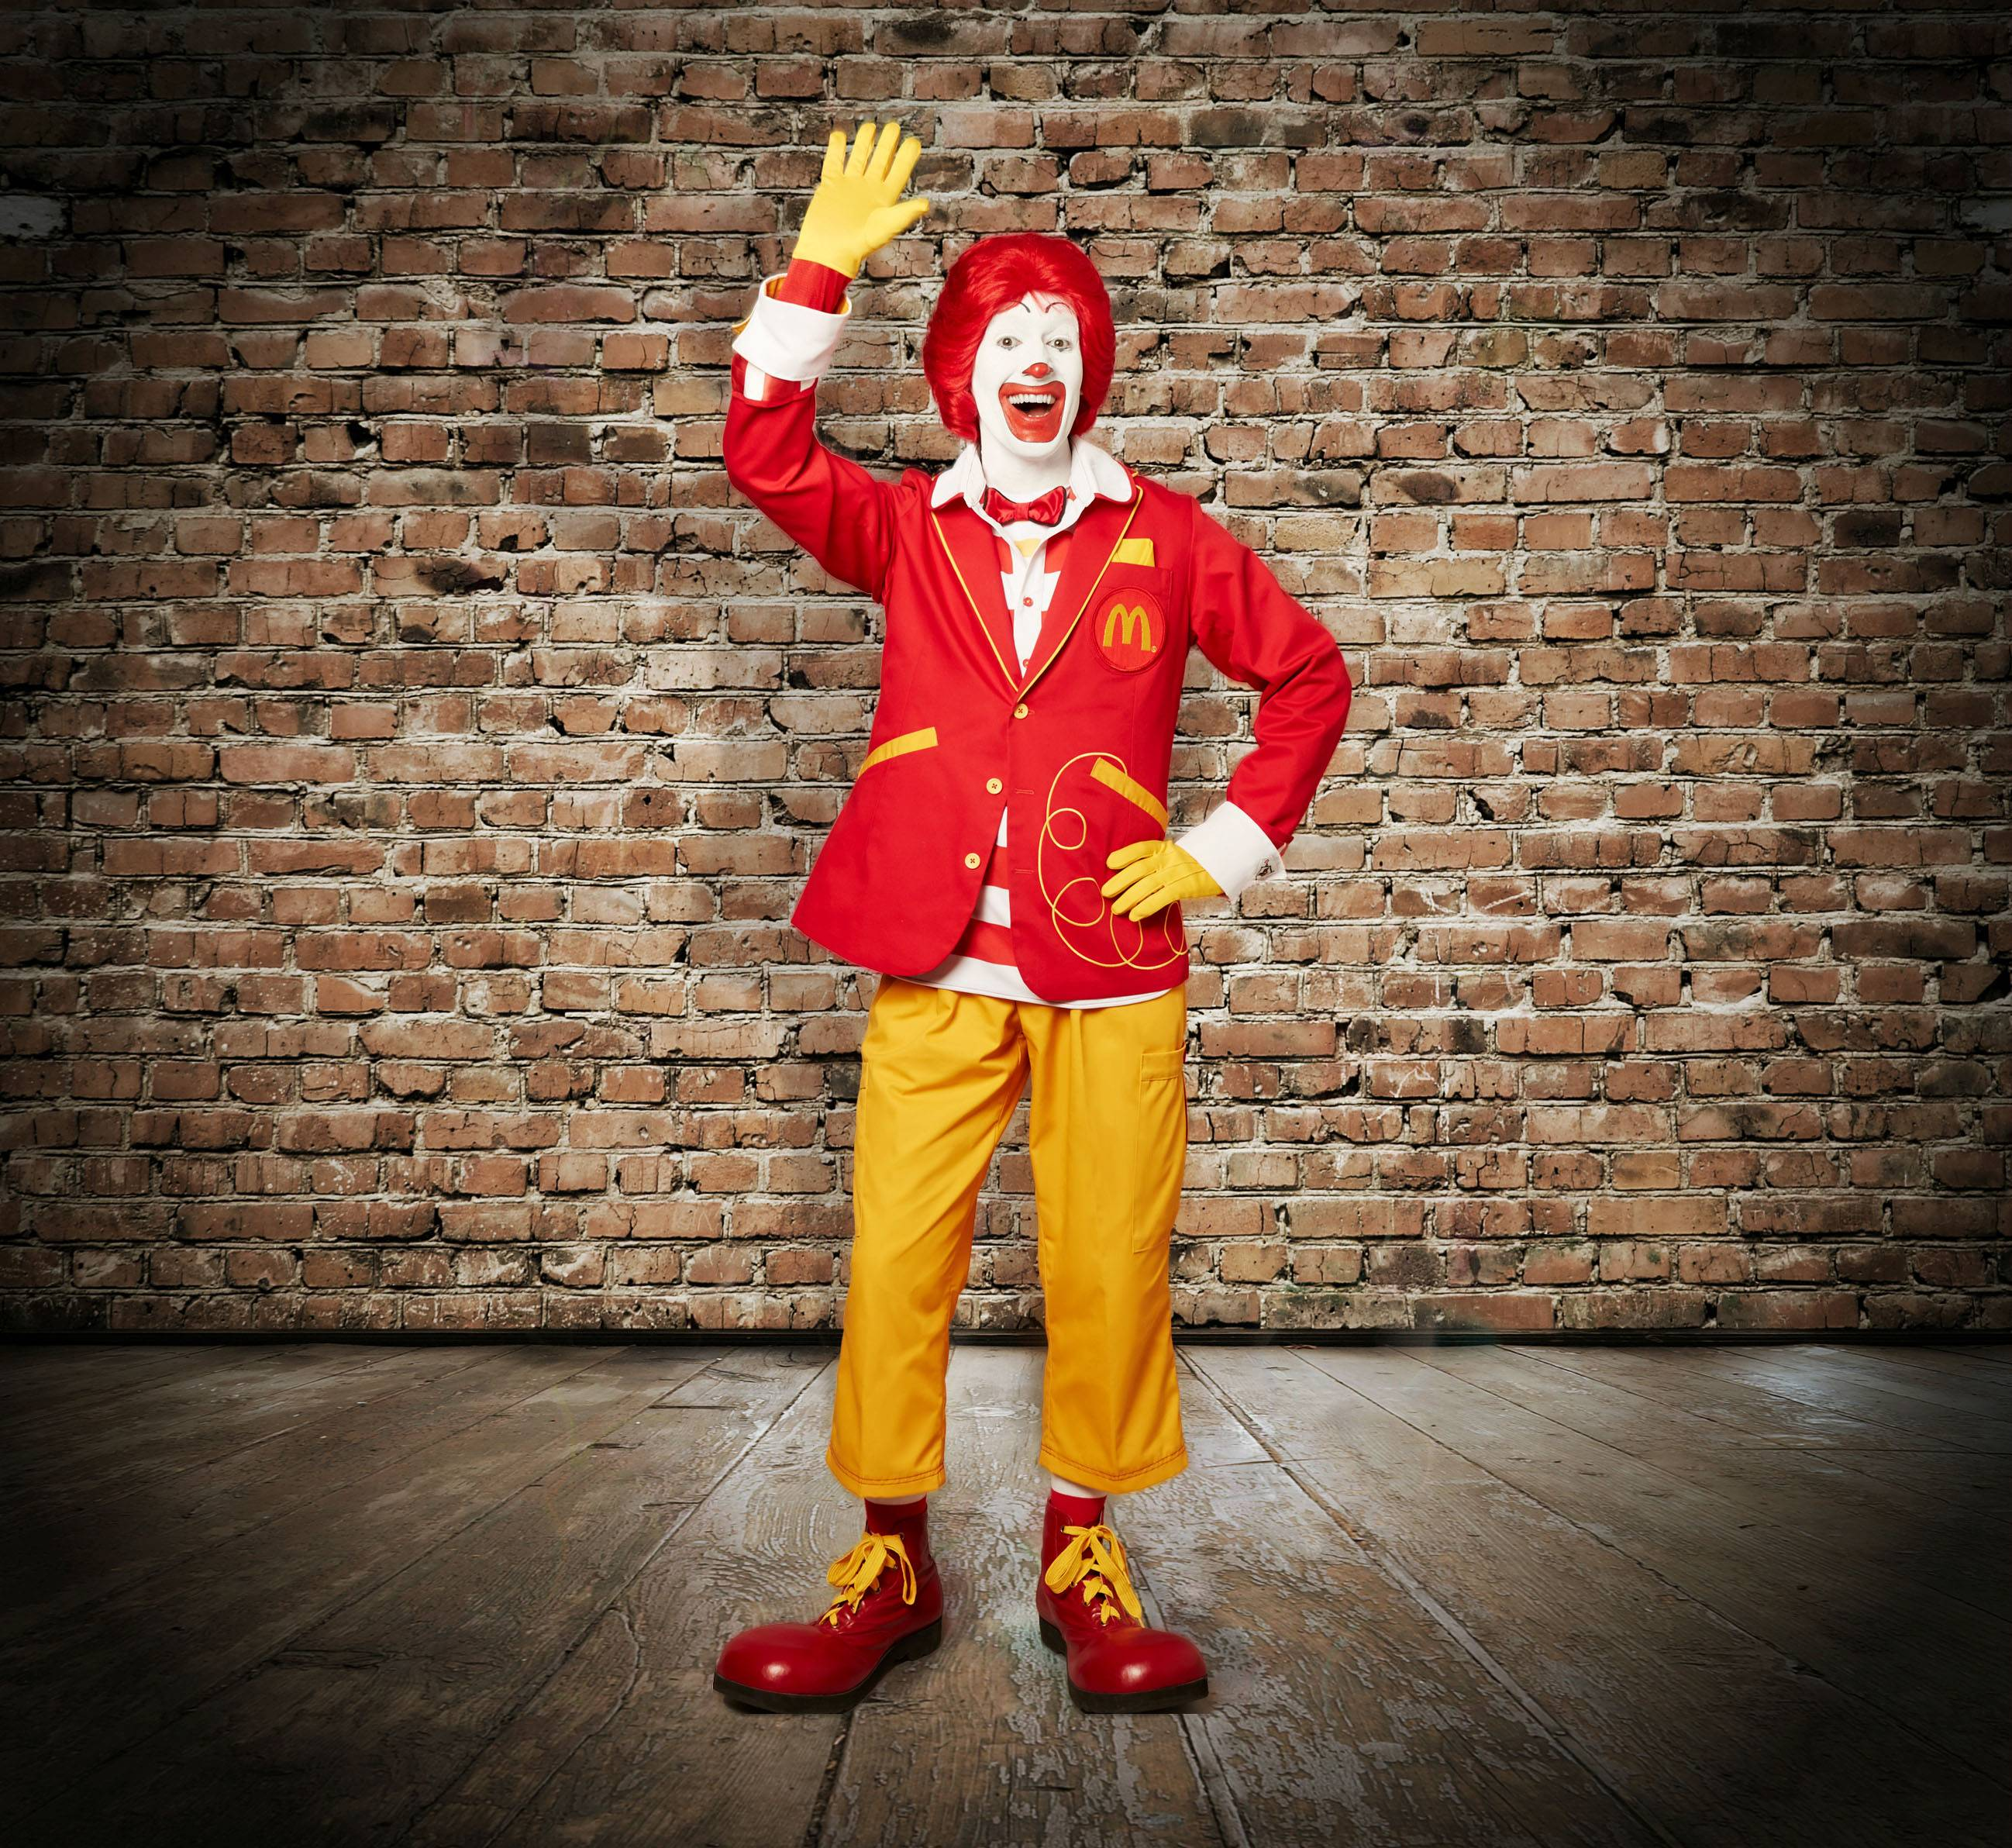 Ronald McDonald with updated clothing.